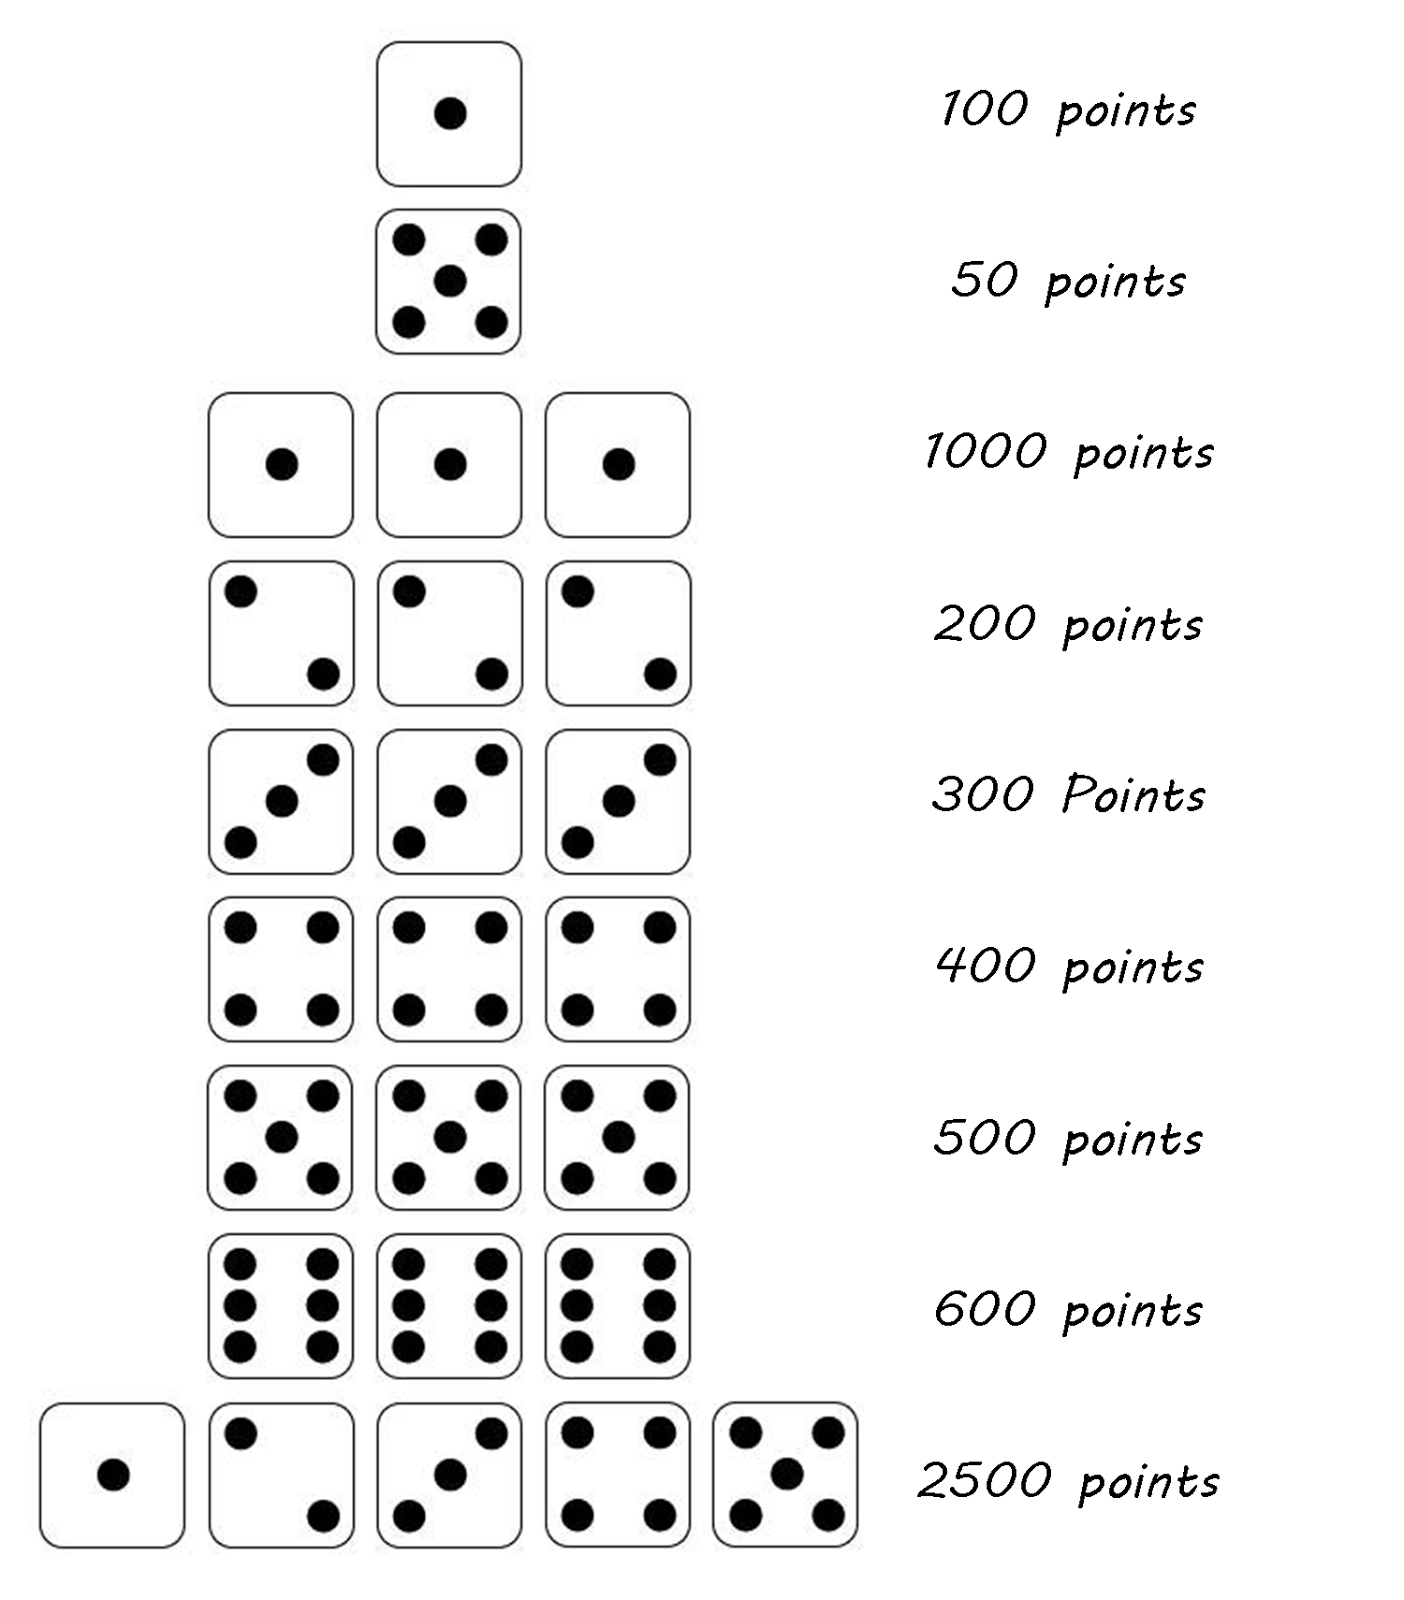 Rules For Dice Game